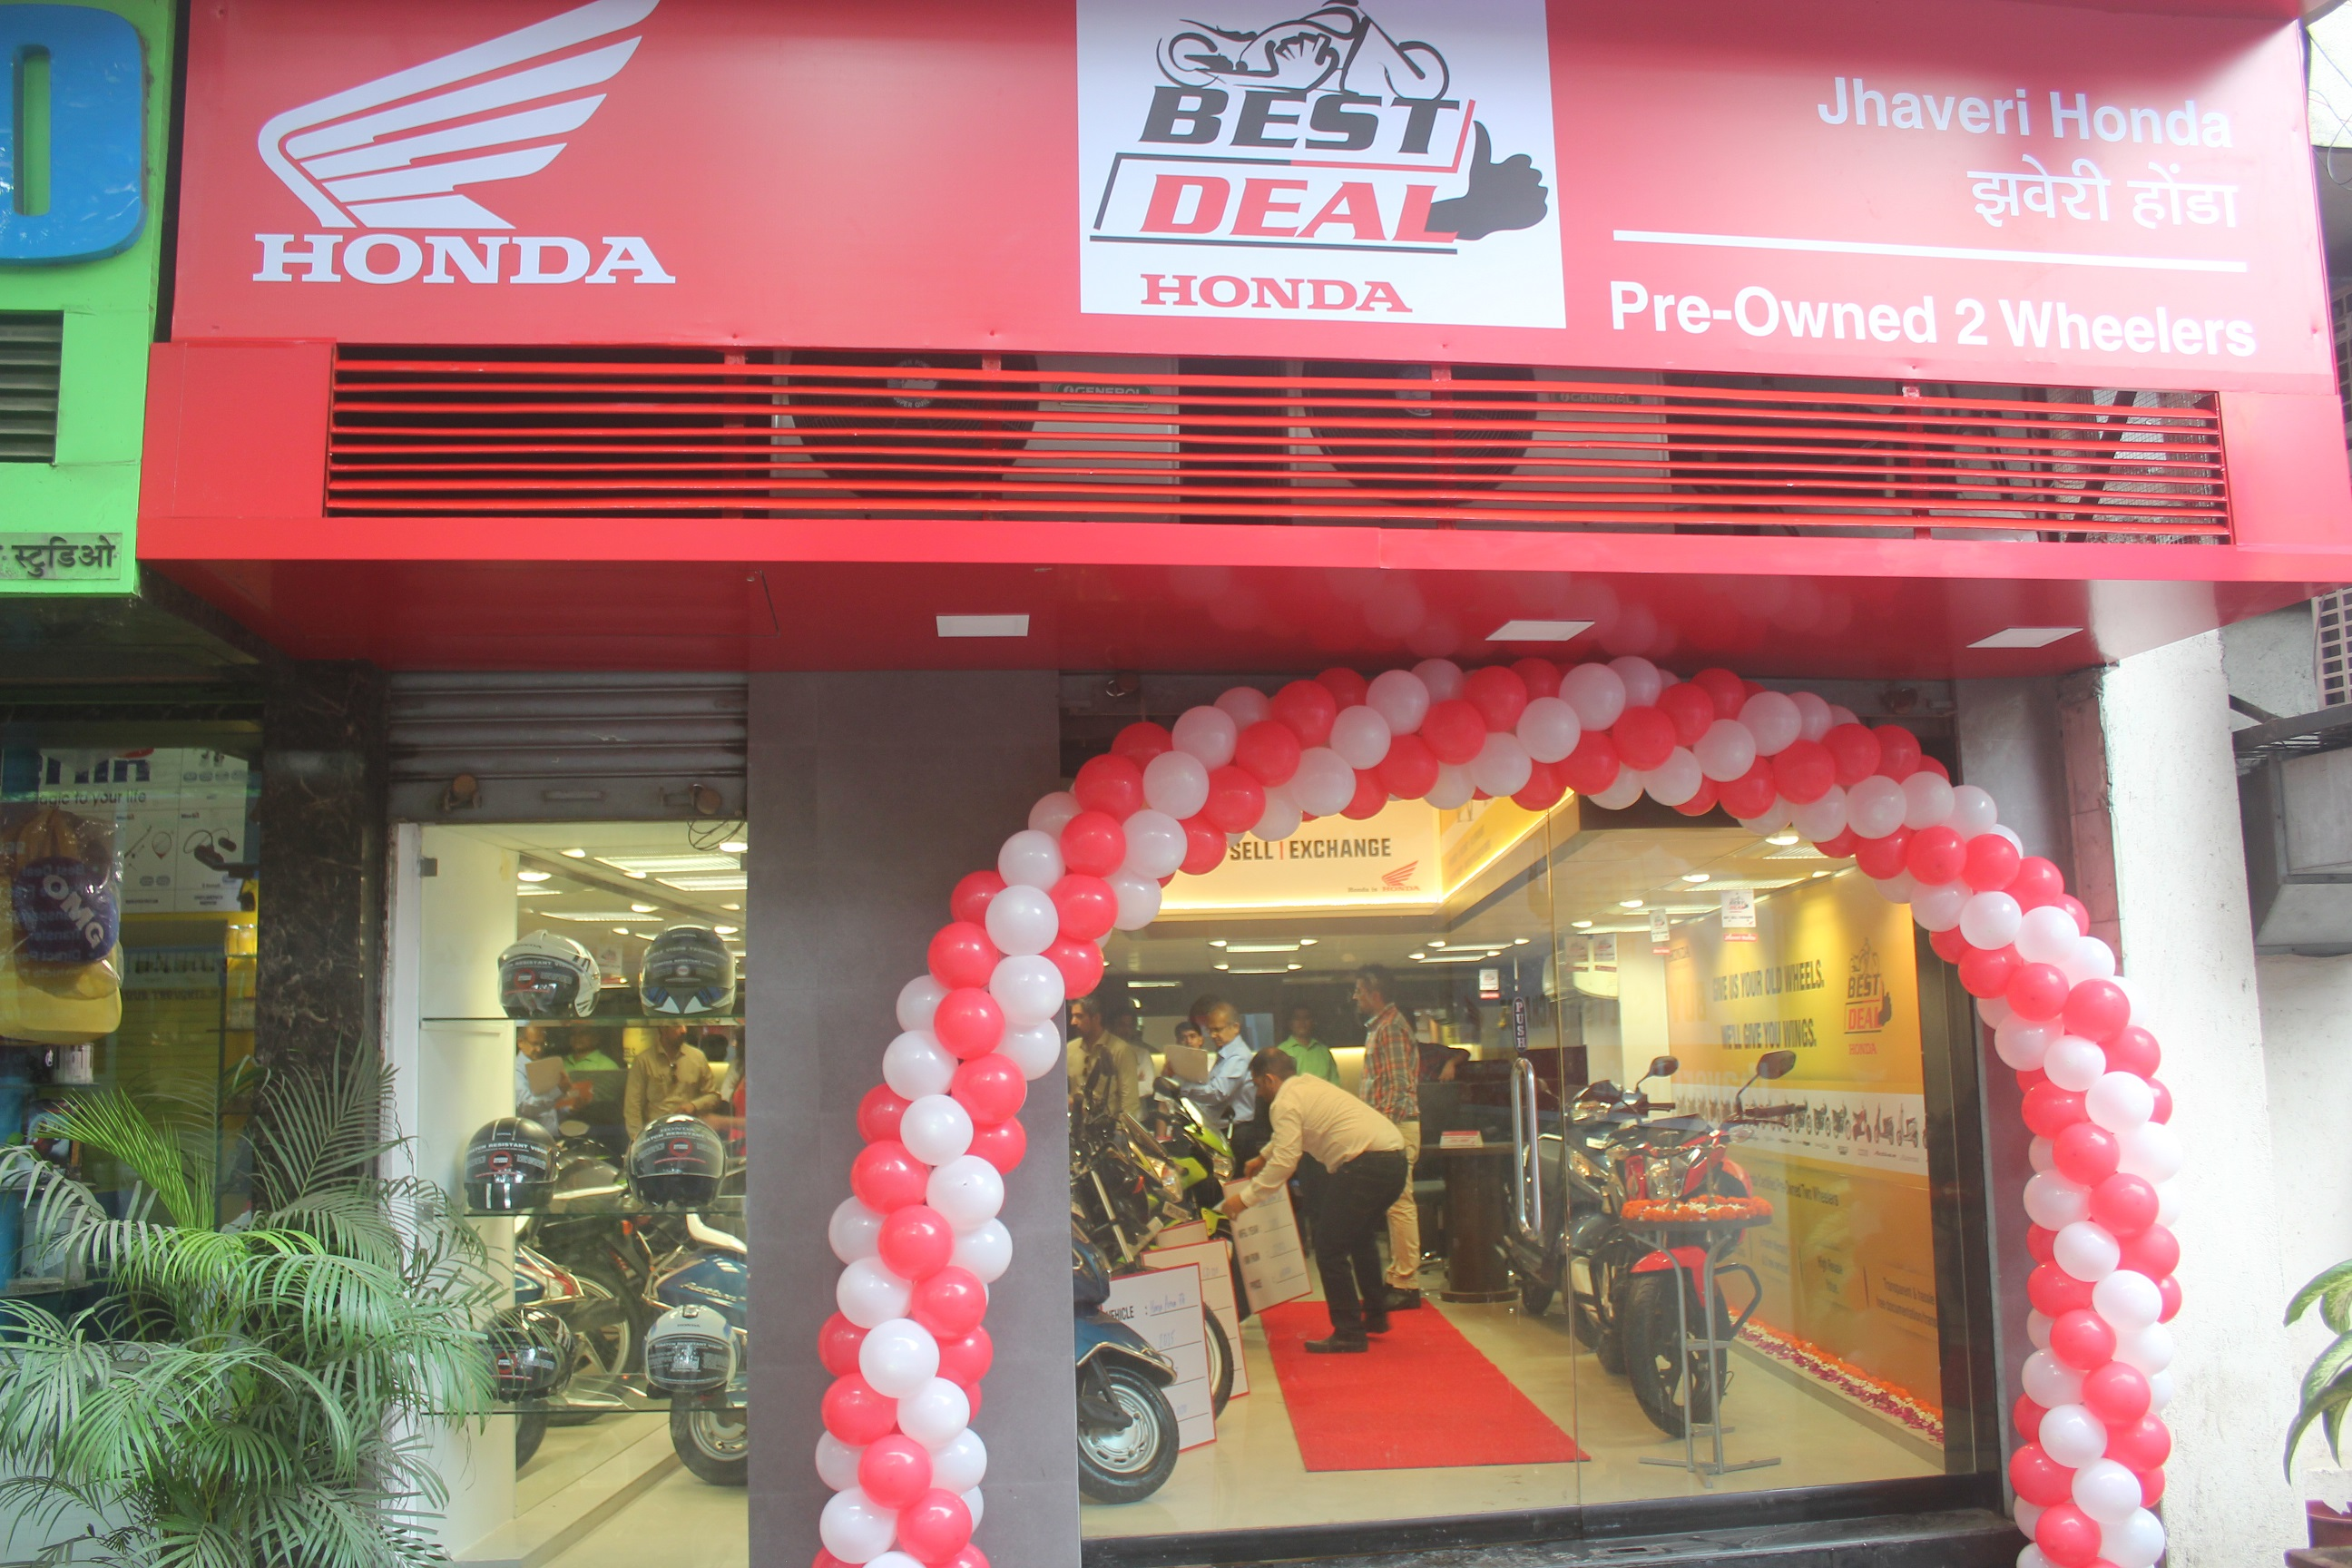 Hmsi strengthens its used 2 wheeler business network for Honda in network